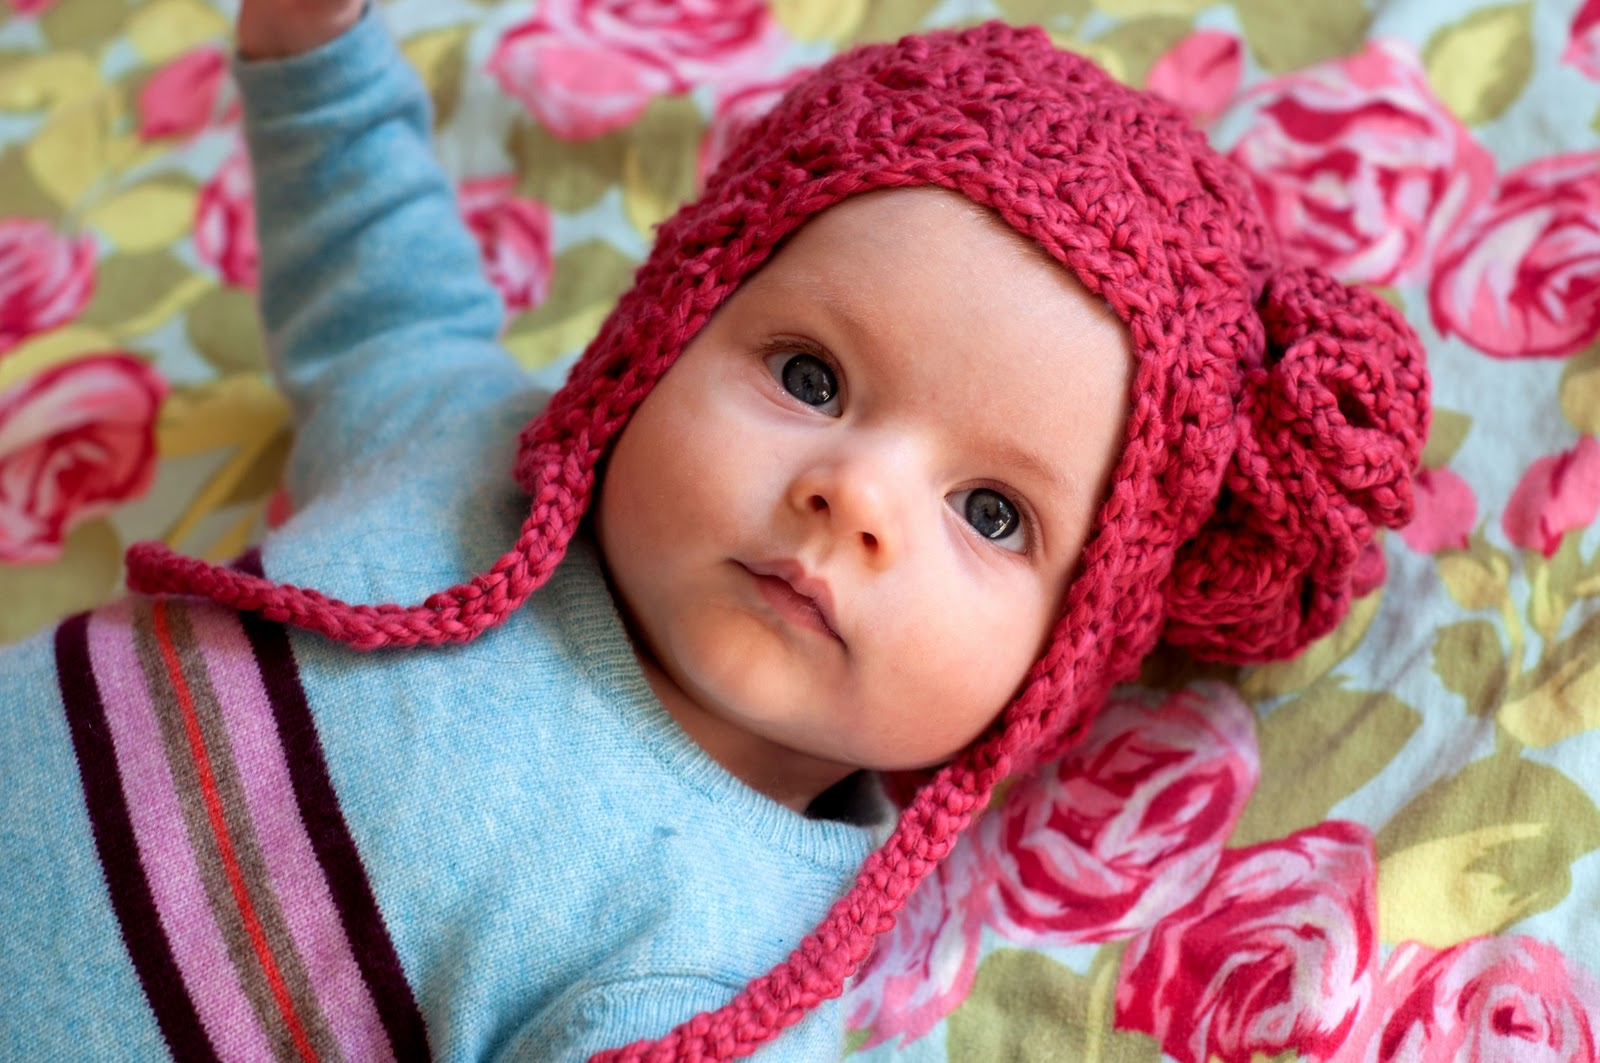 Crochet Earflap Hat : Aesthetic Nest: Crochet: Earflap Hat for Tess